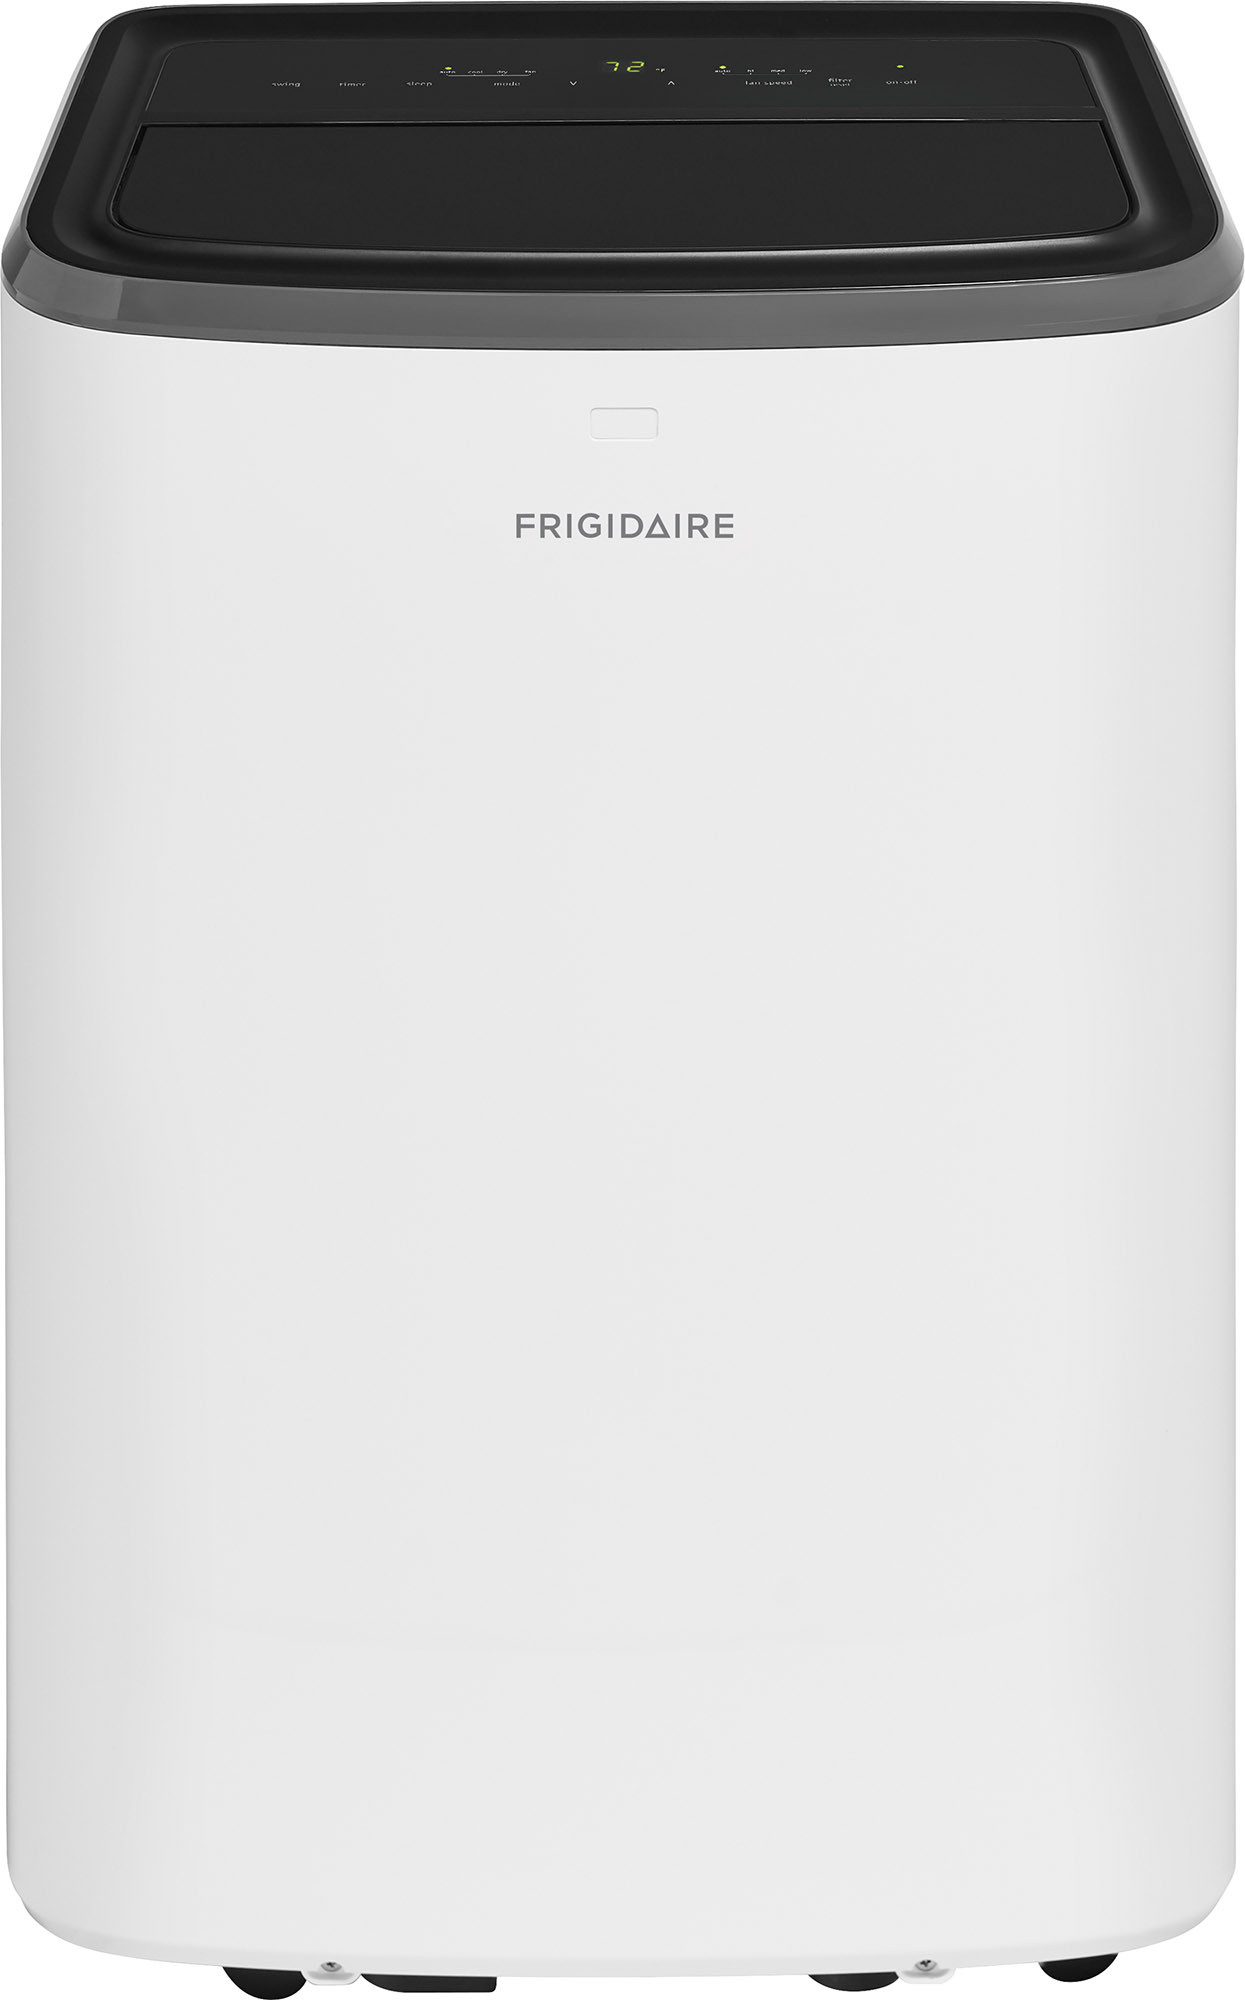 Frigidaire Ffpa0822u1 8 000 Btu Portable Room Air